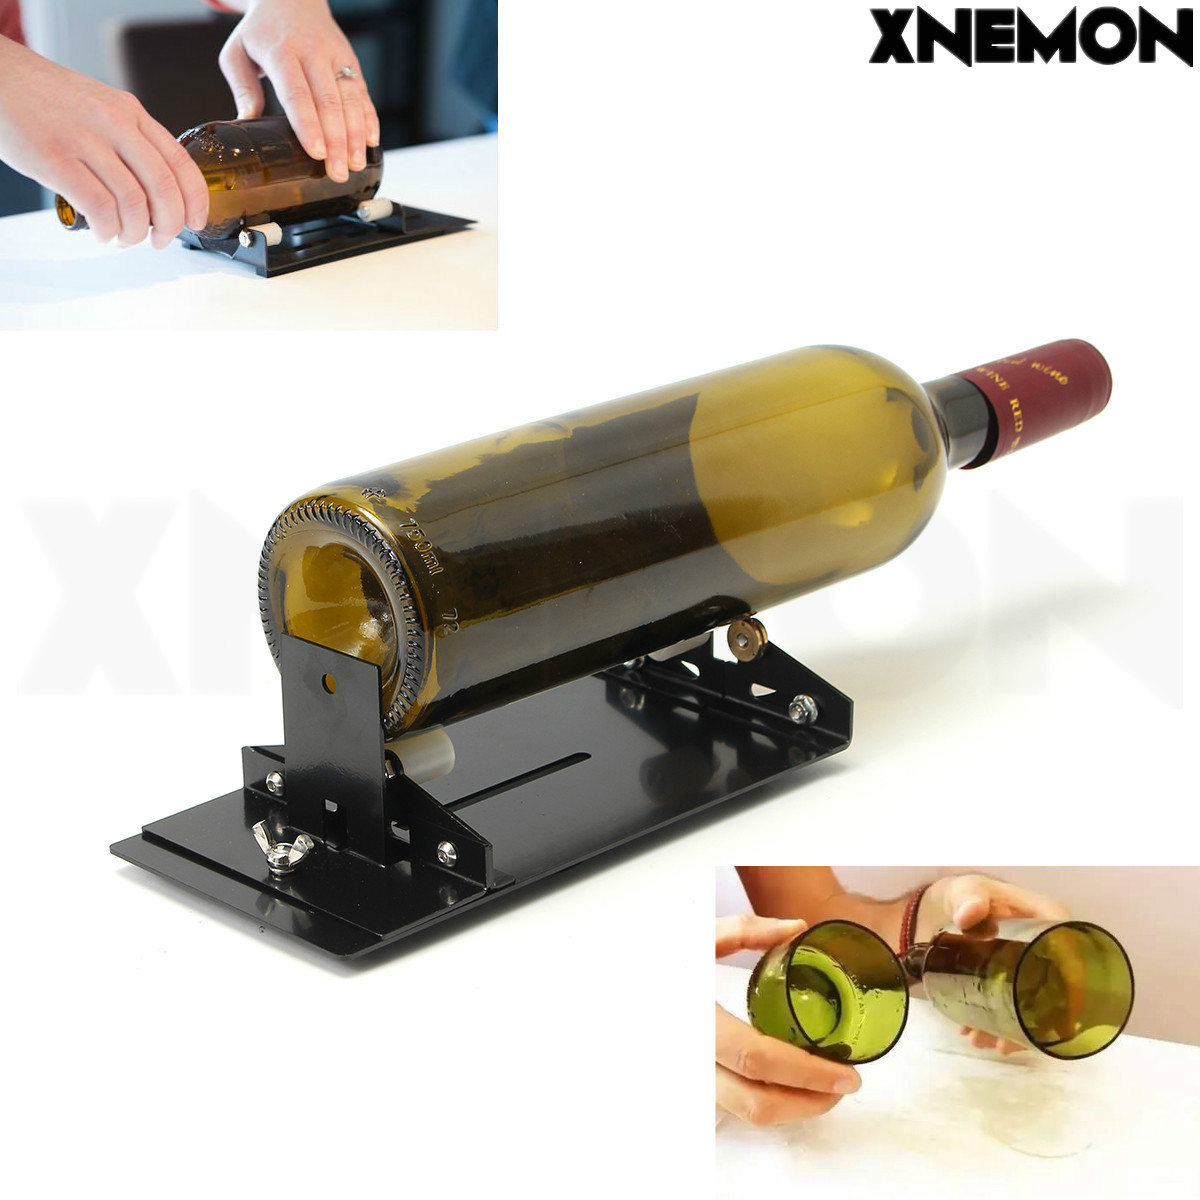 XNEMON Glass Bottle Cutter Machine for Wine Beer Glass Bottles Bottle Cutting Tool Cutters with Plastic Pulley, YG8 Cutter Wheel professional glass bottle cutter wine bottle cutting tools glass tool high quality home household accessories